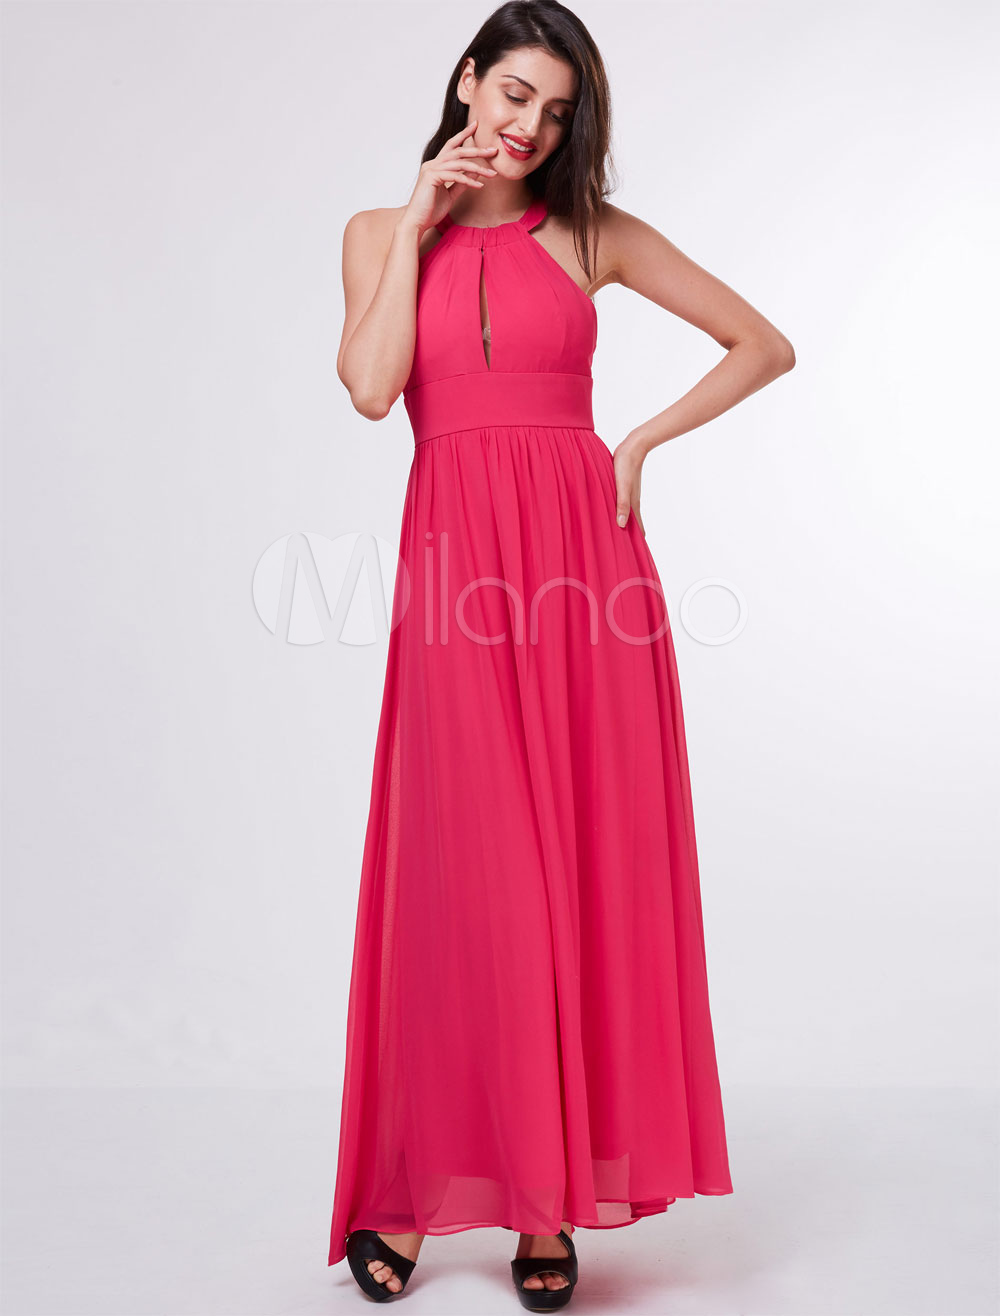 Buy Rose Prom Dresses Chiffon Halter Cut Out Backless Long Floor Length Formal Party Dress for $65.99 in Milanoo store